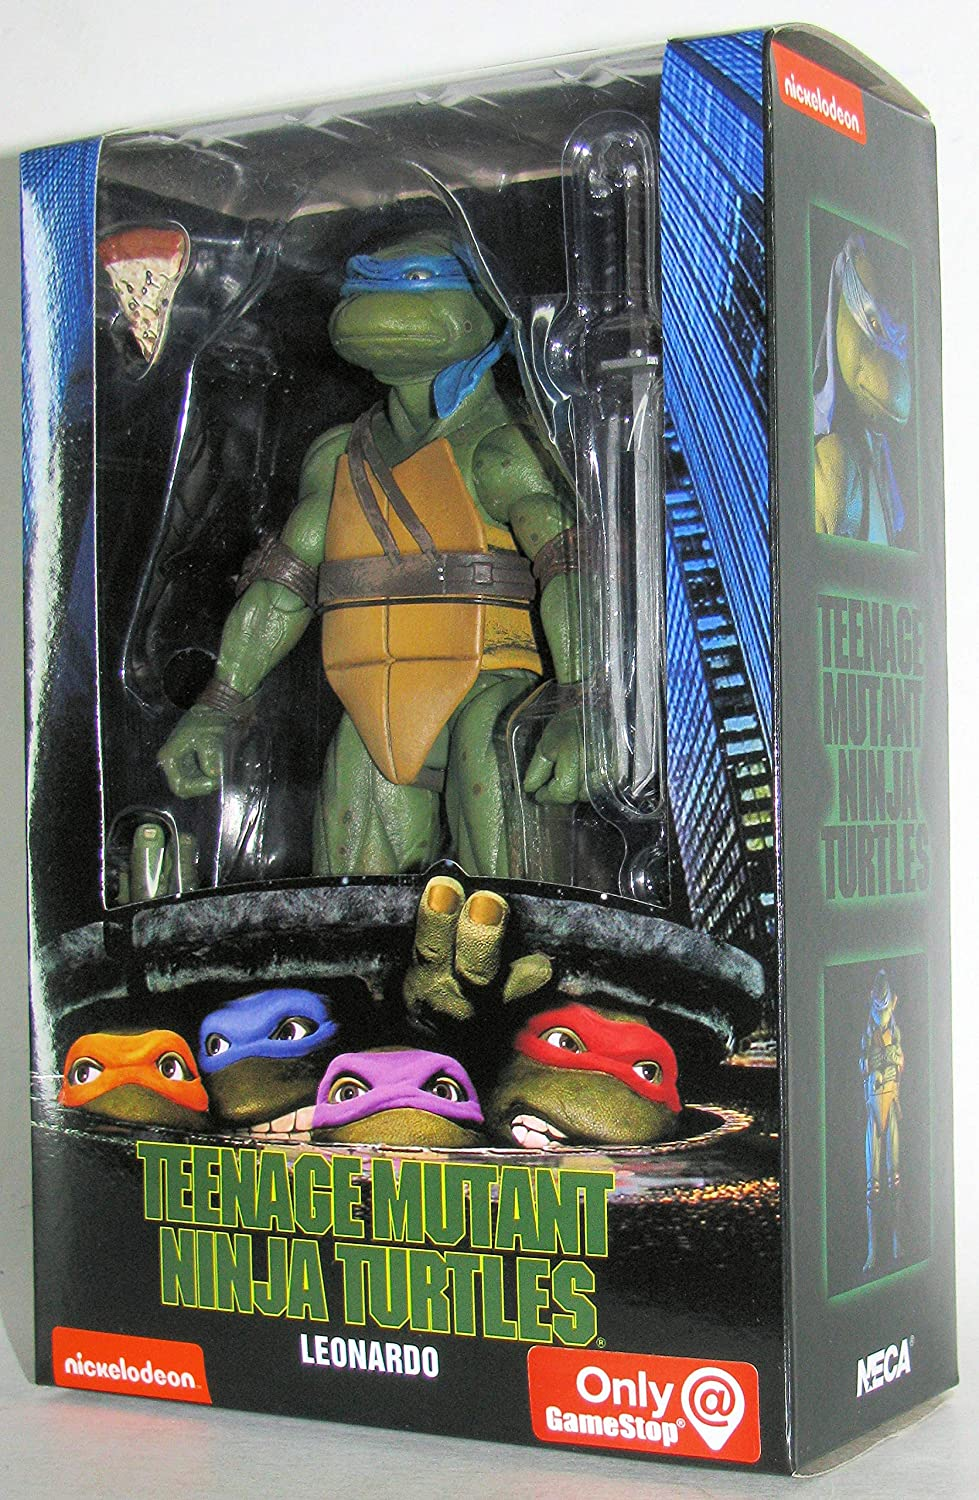 Teenage Mutant Ninja Turtles 90's Movie Leonardo 6.5-inch Action Figure by NECA Reel Toys 2019 GameStop Exclusive